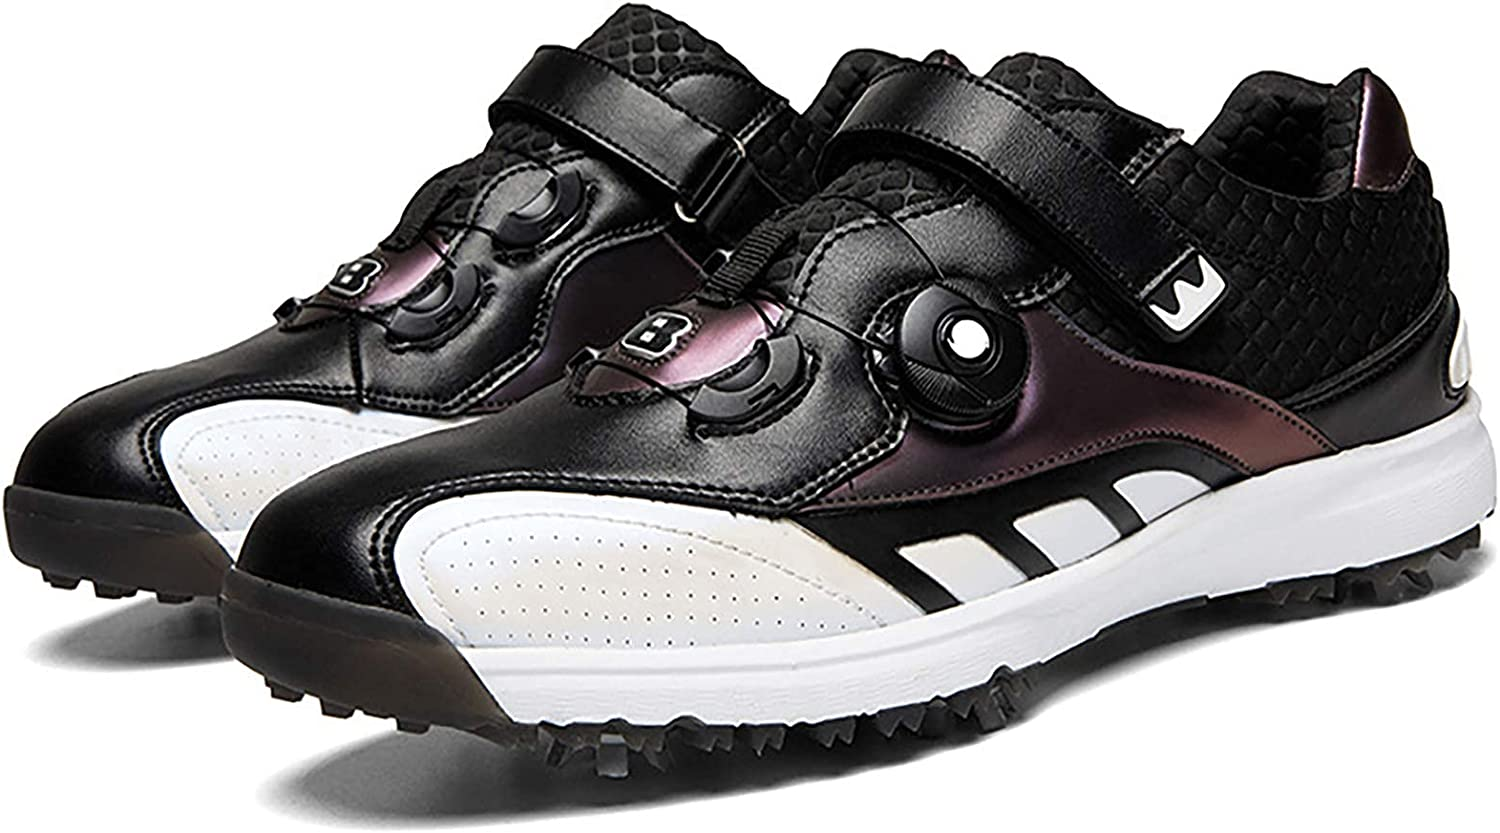 AIAIⓇ Men's Waterproof Golf Sale Fixed price for sale special price Shoes - Removable Spikes Water